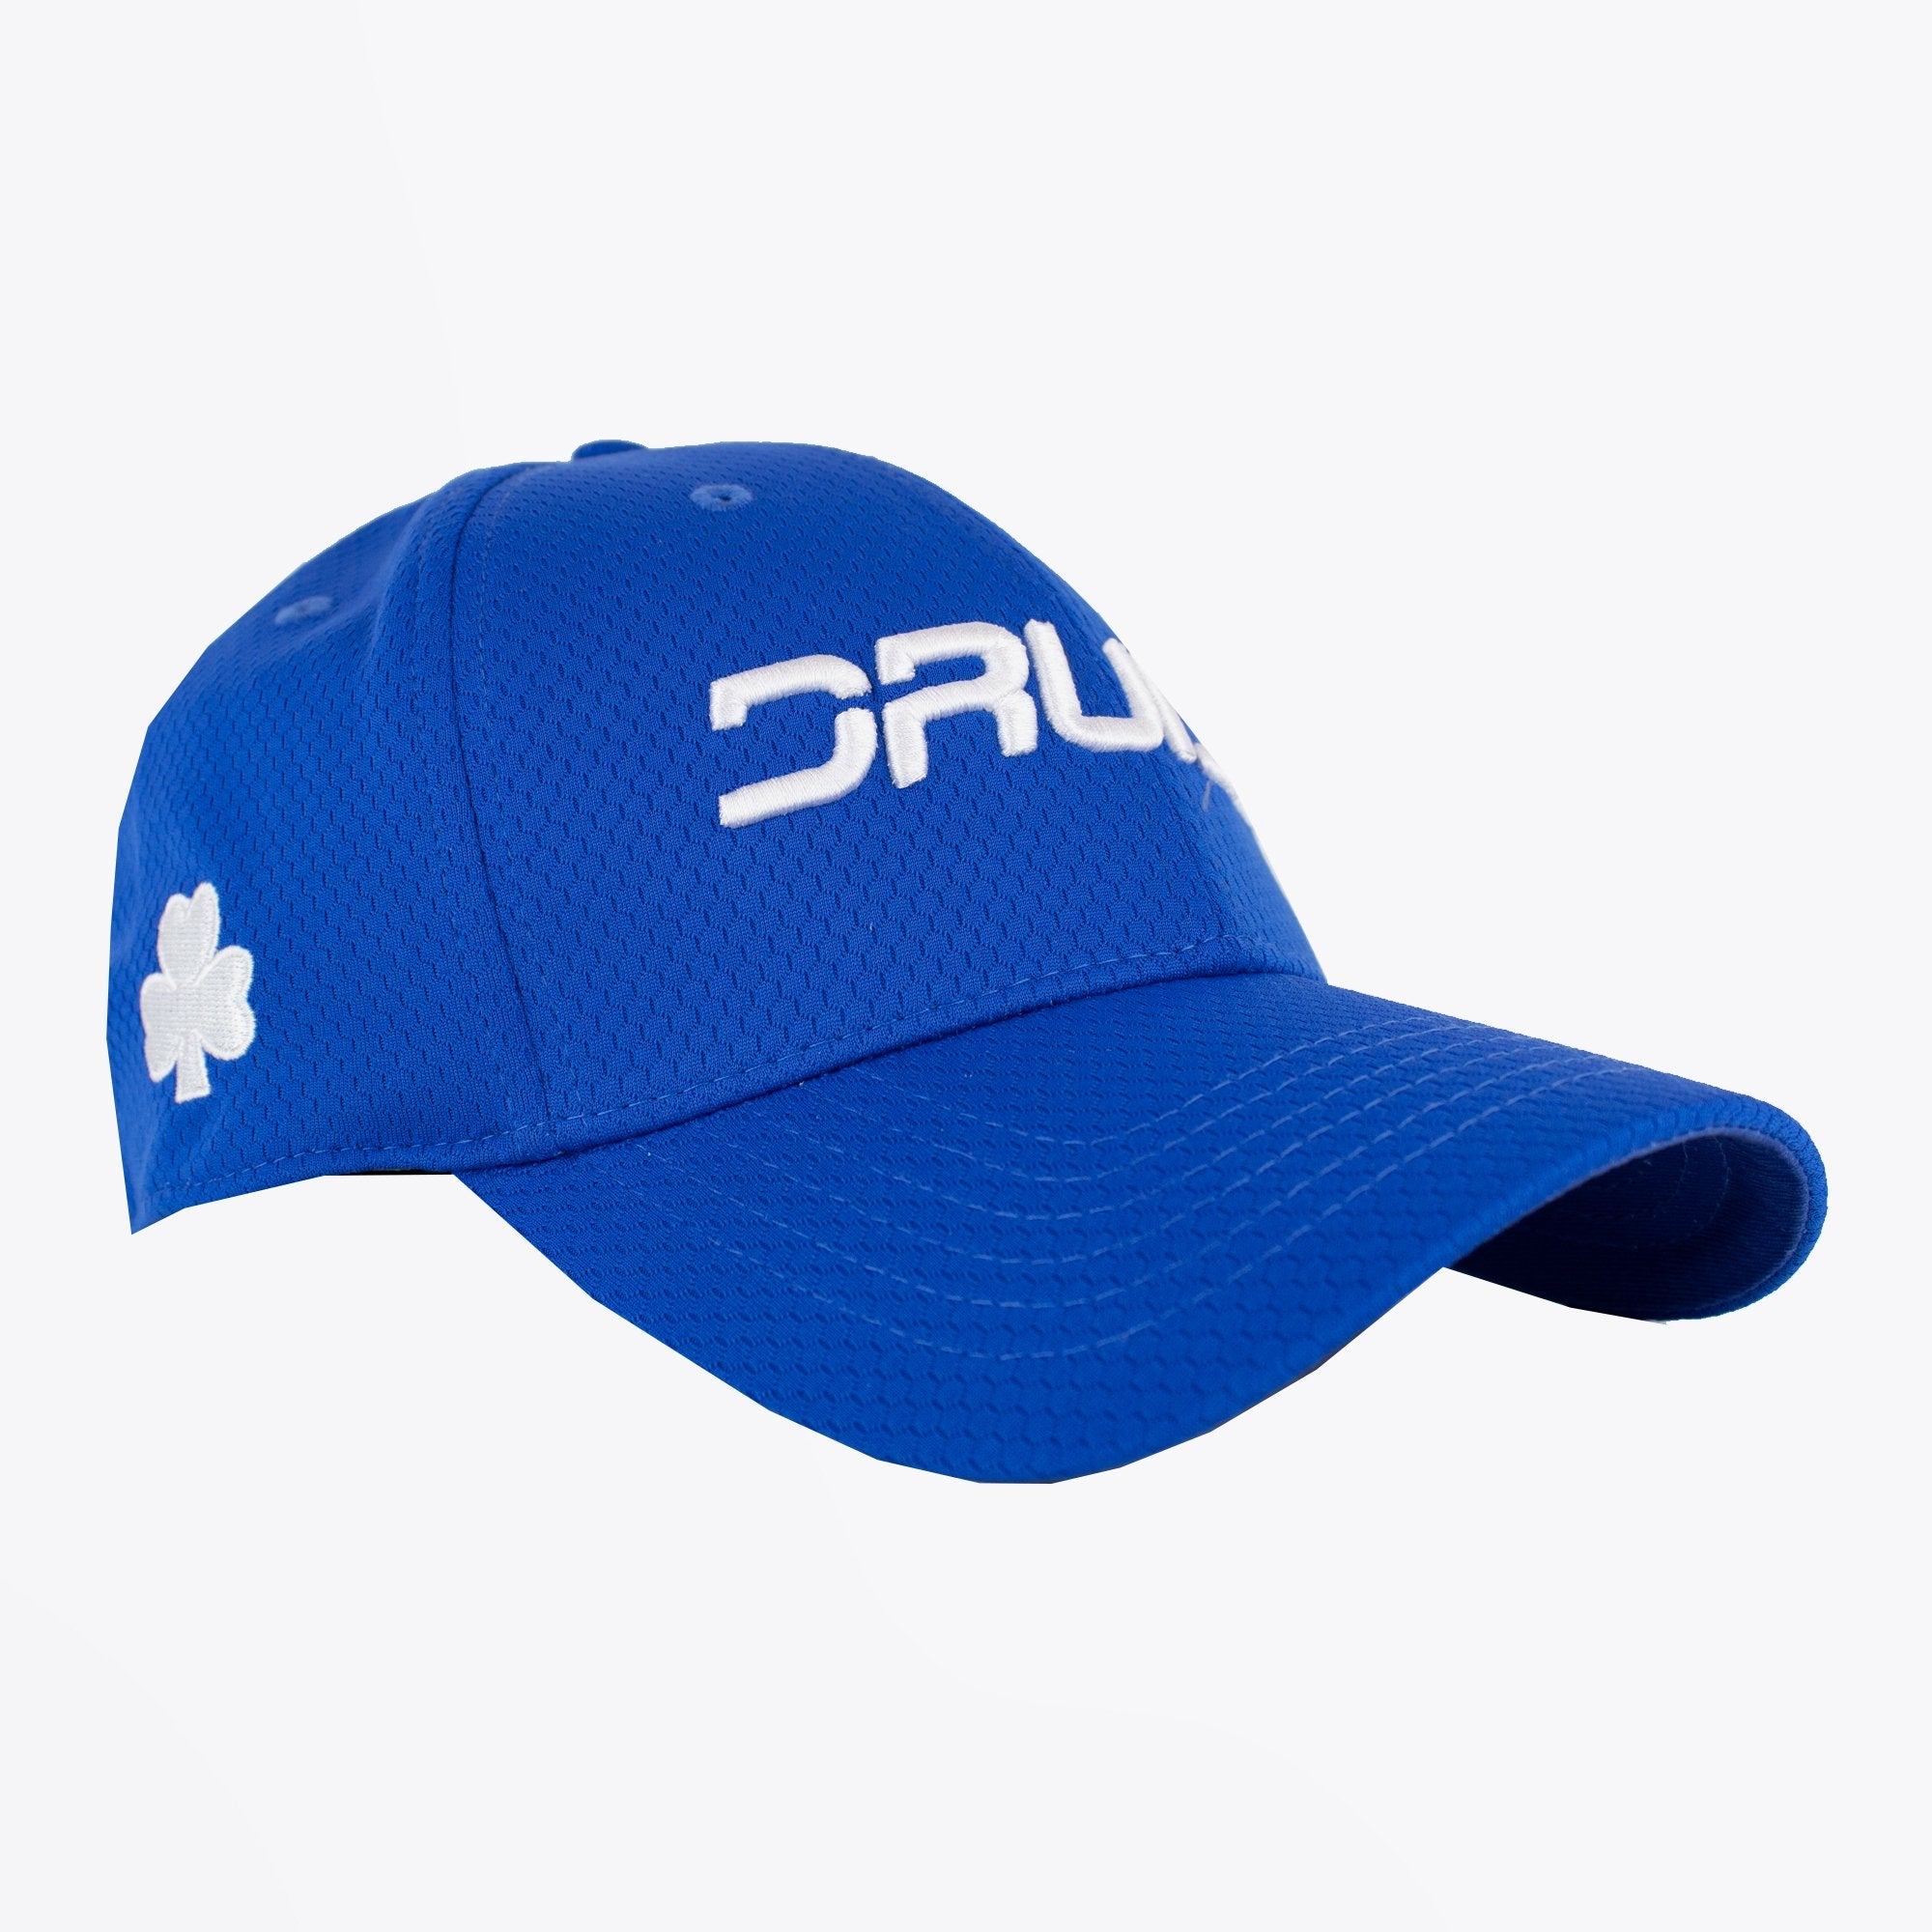 Druids Golf - Tour Cap Blue (Druids)